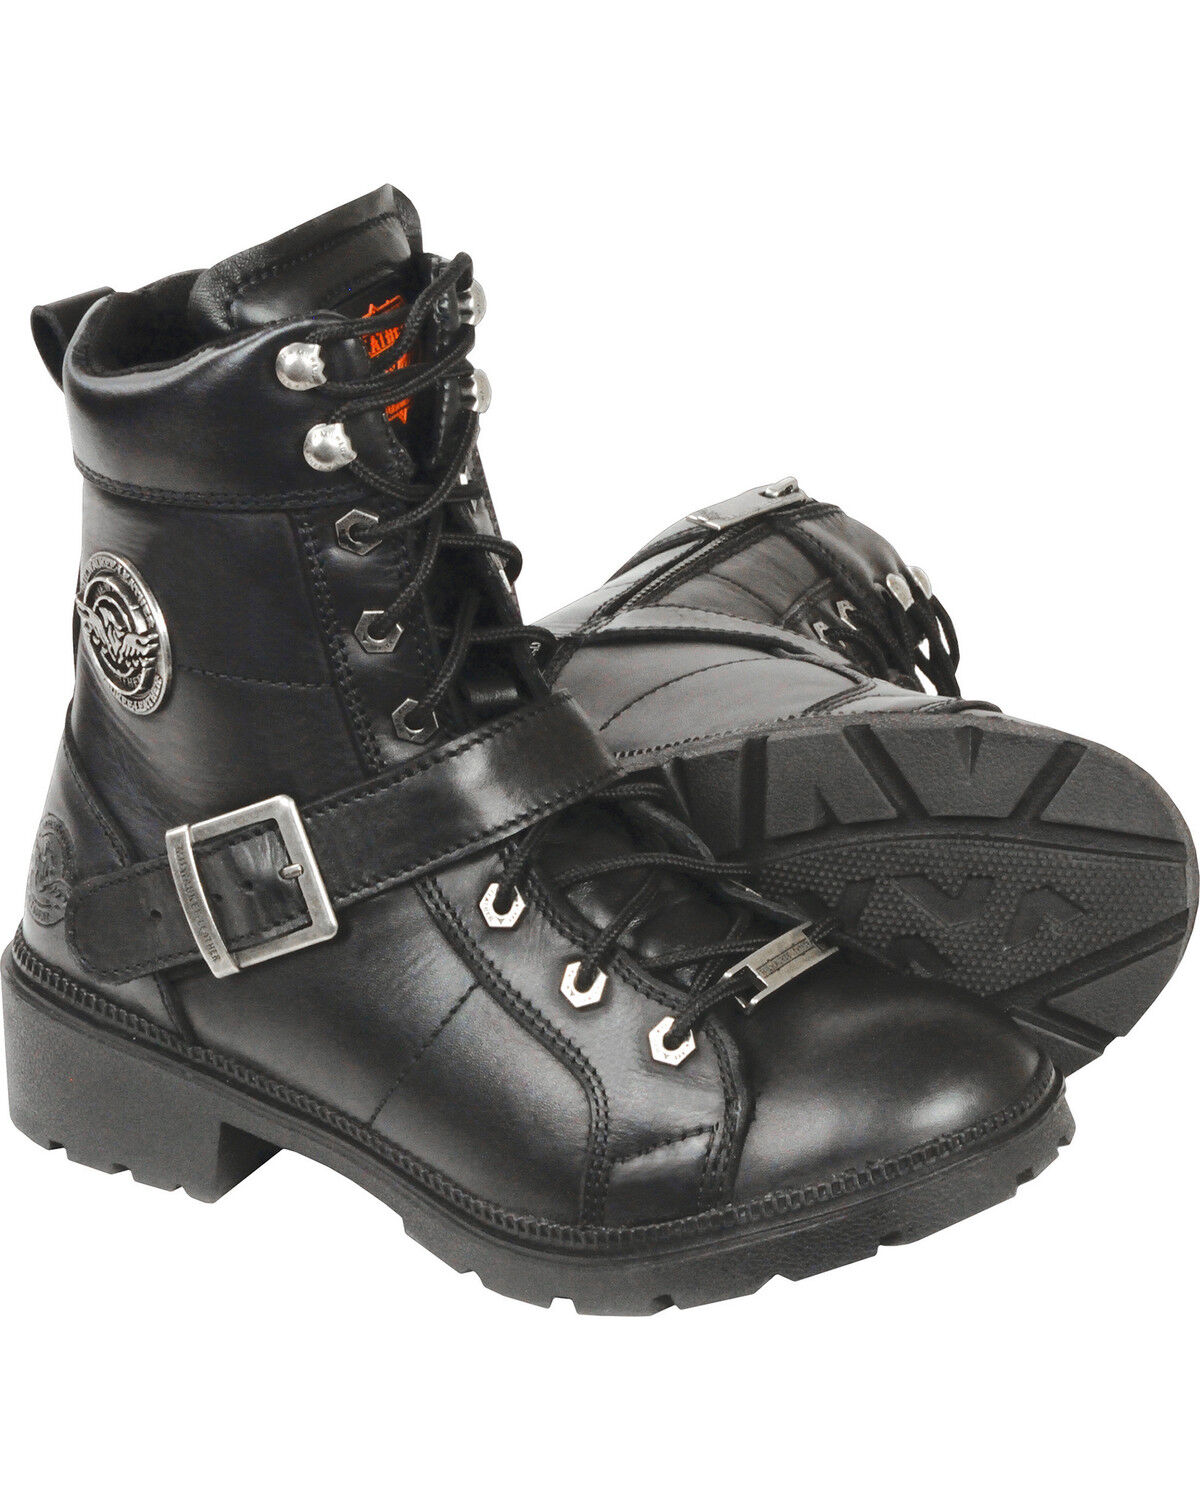 Black, 7 Milwaukee Performance Womens Lace to Toe Boot